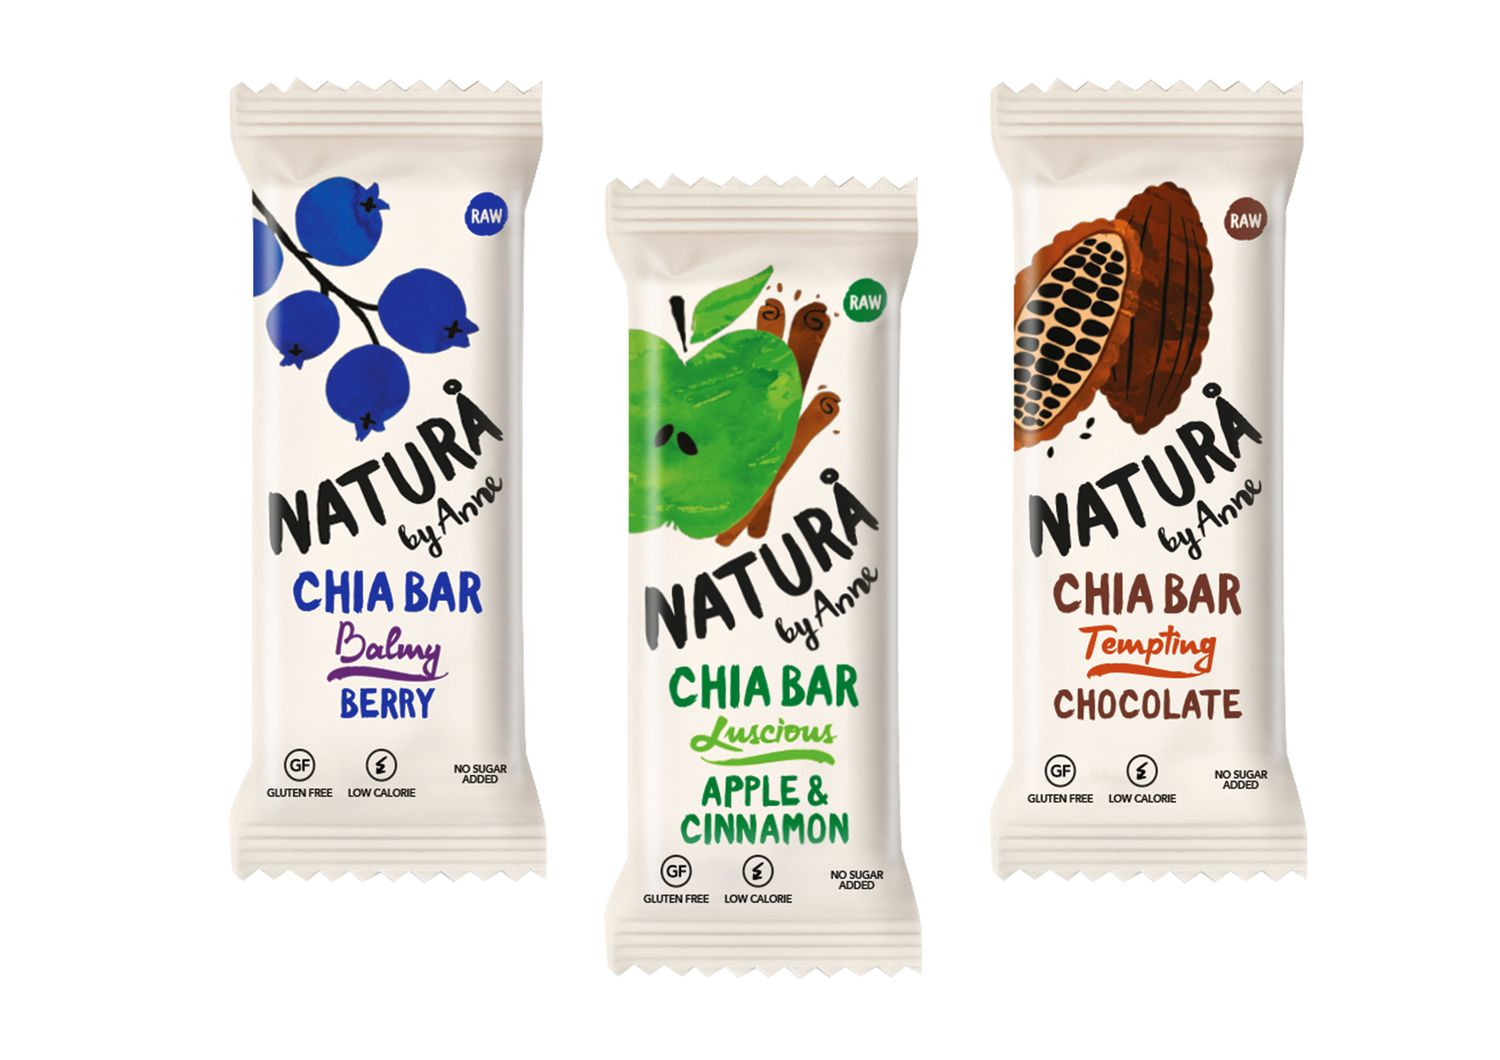 Natura by anne package design innovation news and brand for Food bar packaging